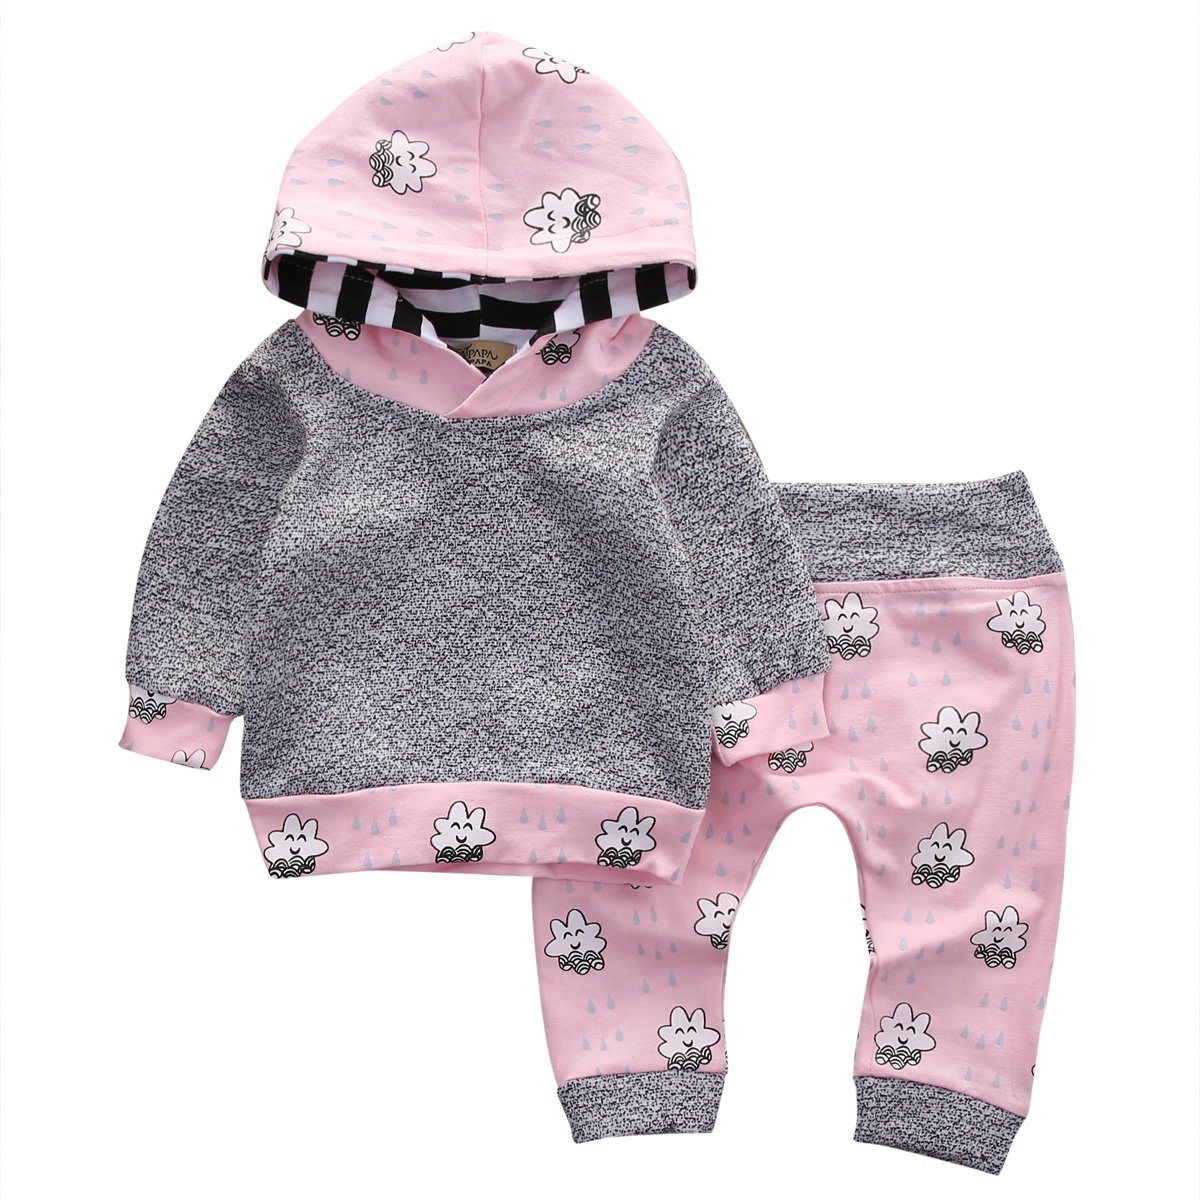 Newborn Baby Girls Clothes Long Sleeve Hoodies Tops Legging Pants Outfits Set Aliven